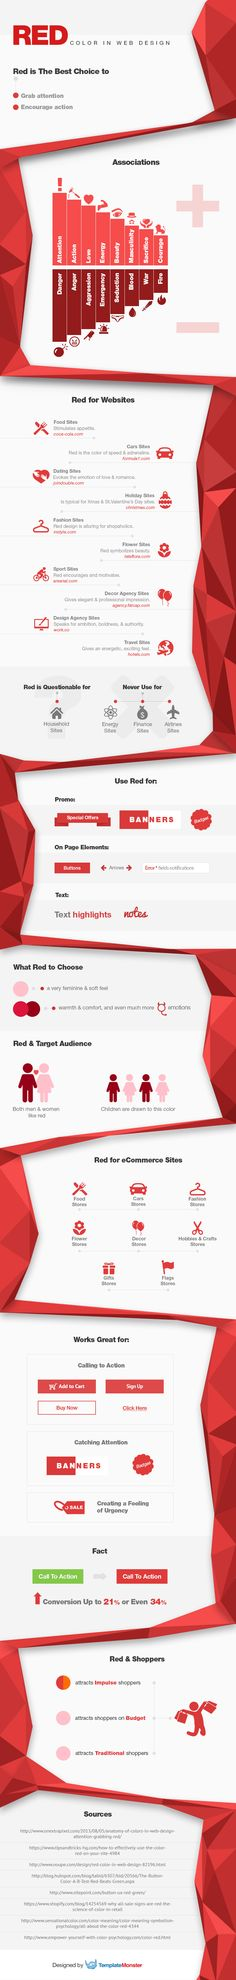 #Red #Color in Web #Design [#Infographics]  #TemplateMonster starts a series of infographics about color #psychology. Please welcome the first one dedicated to Red Color in Web Design. Find here all you wanted to know about the #power of red in designing websites, #online #stores, its #effect on visitors and tips on how to use it.